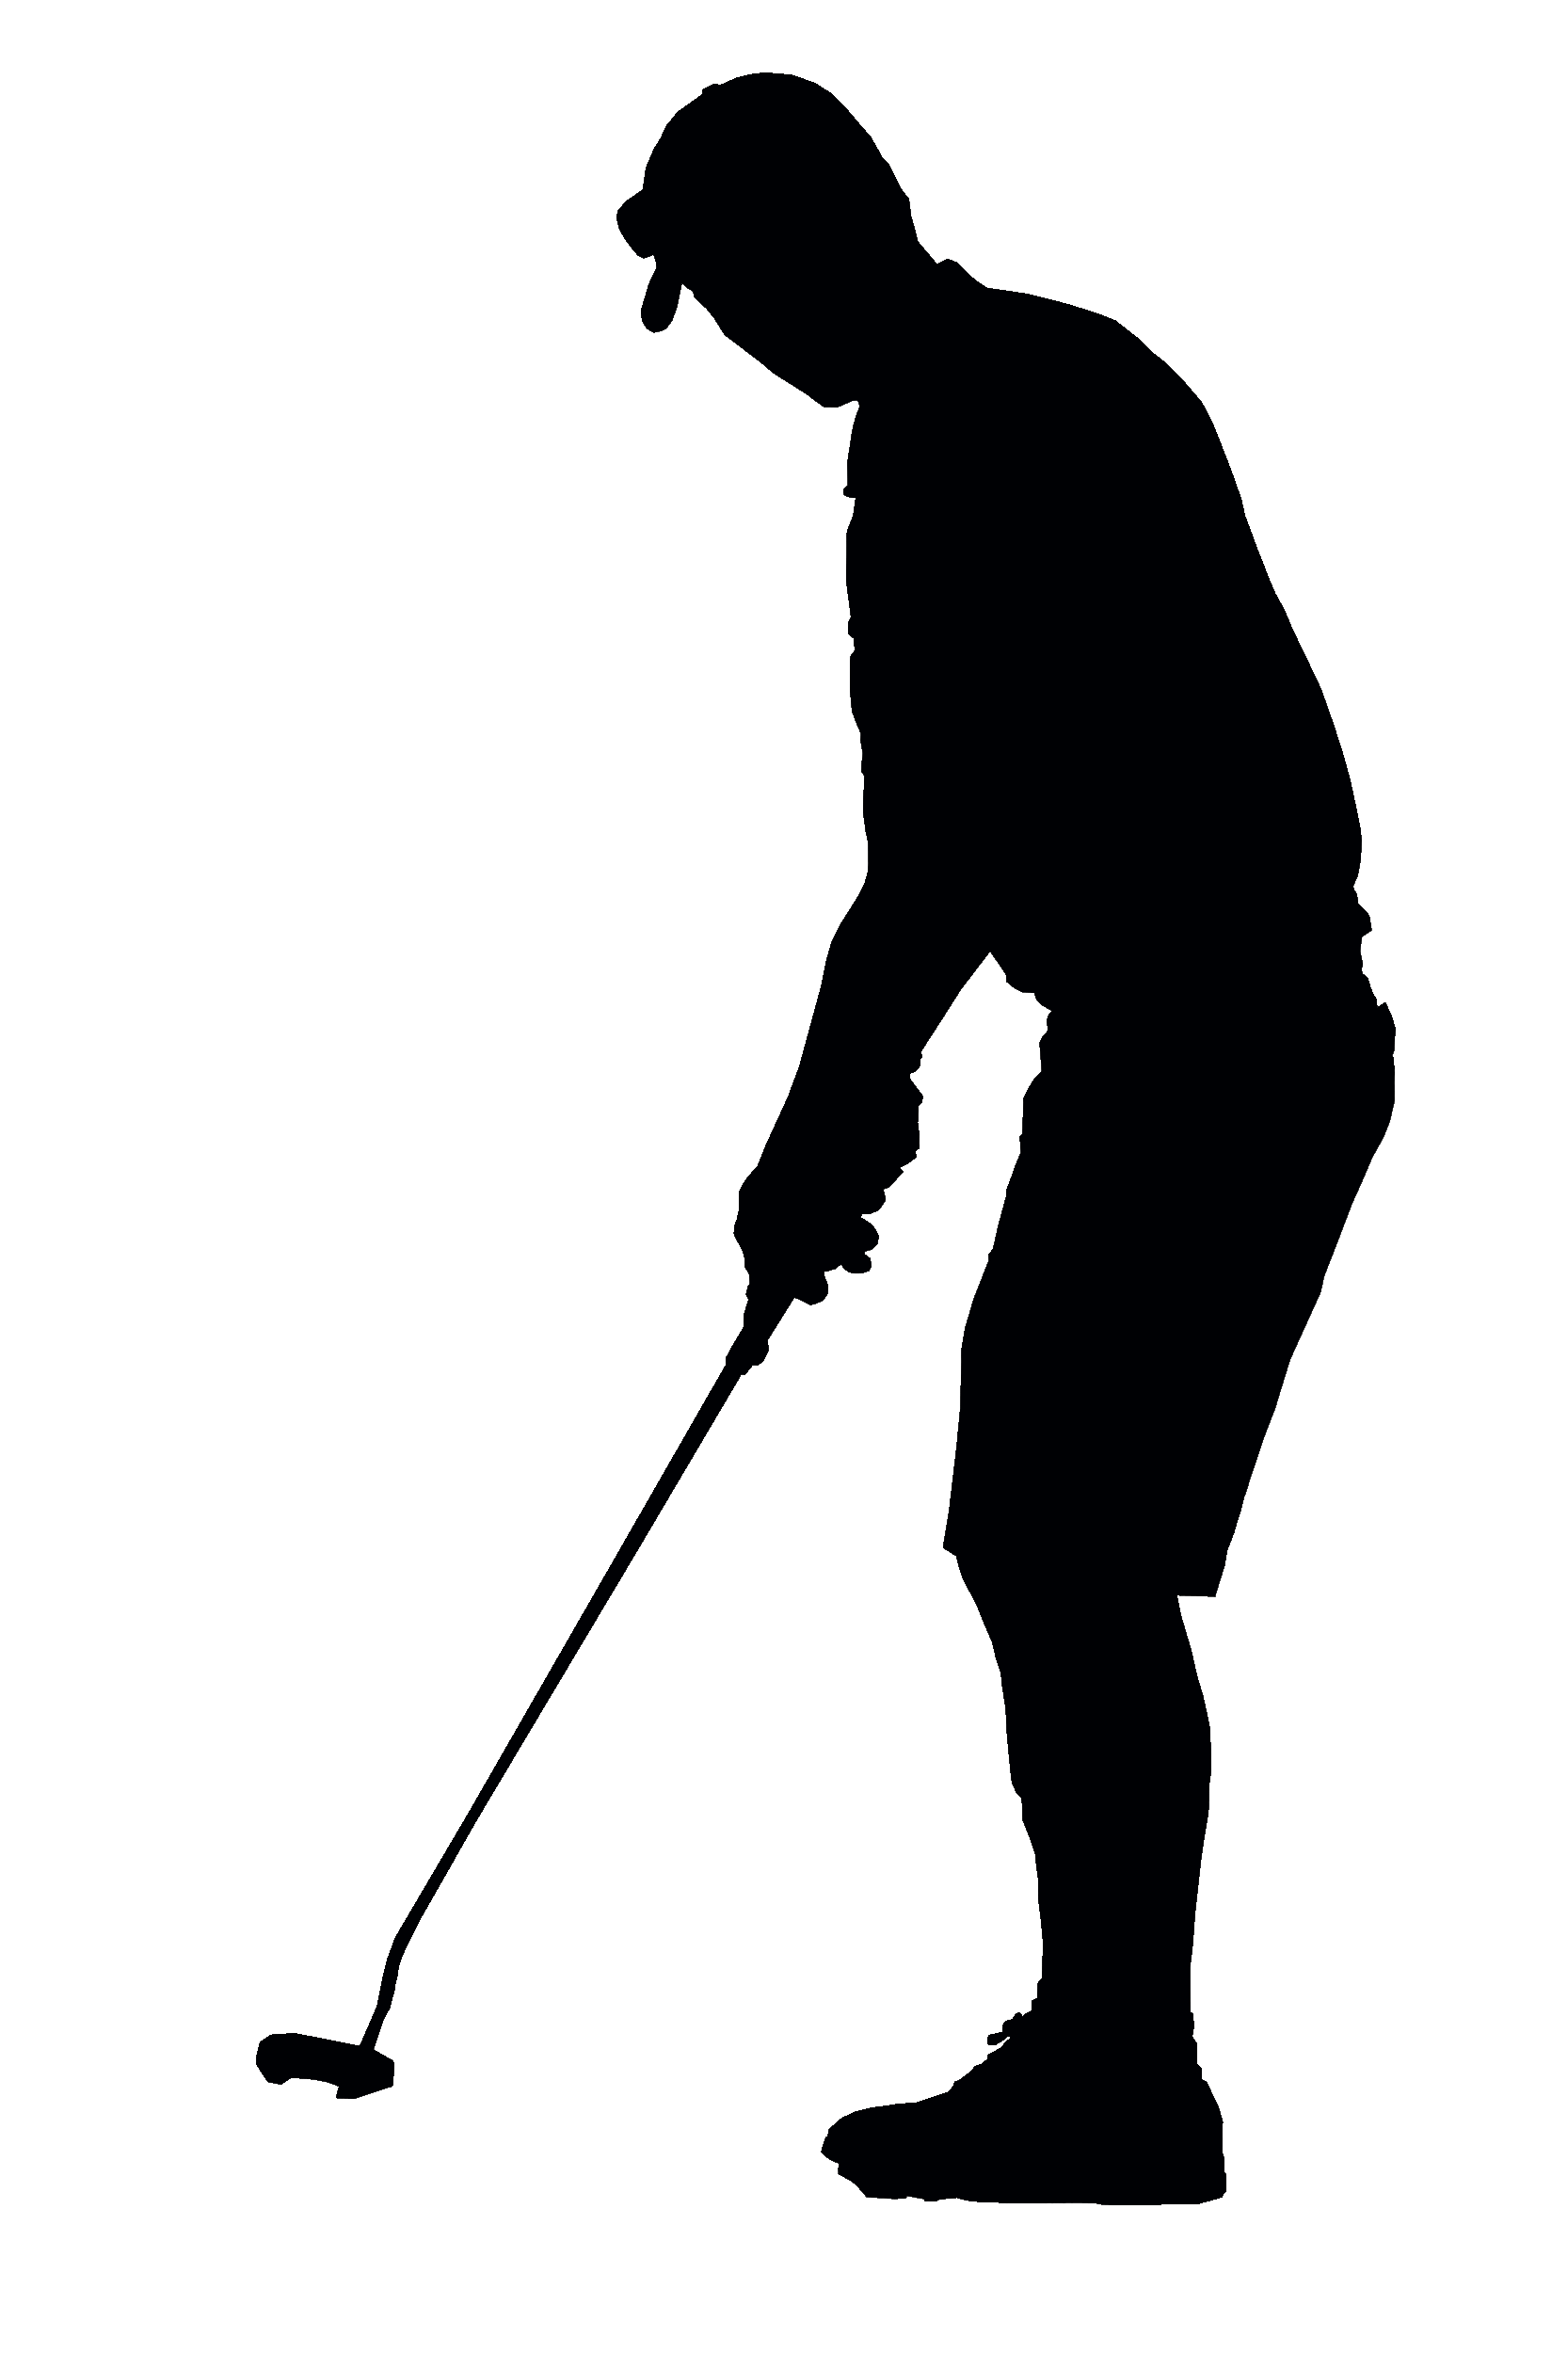 png golf